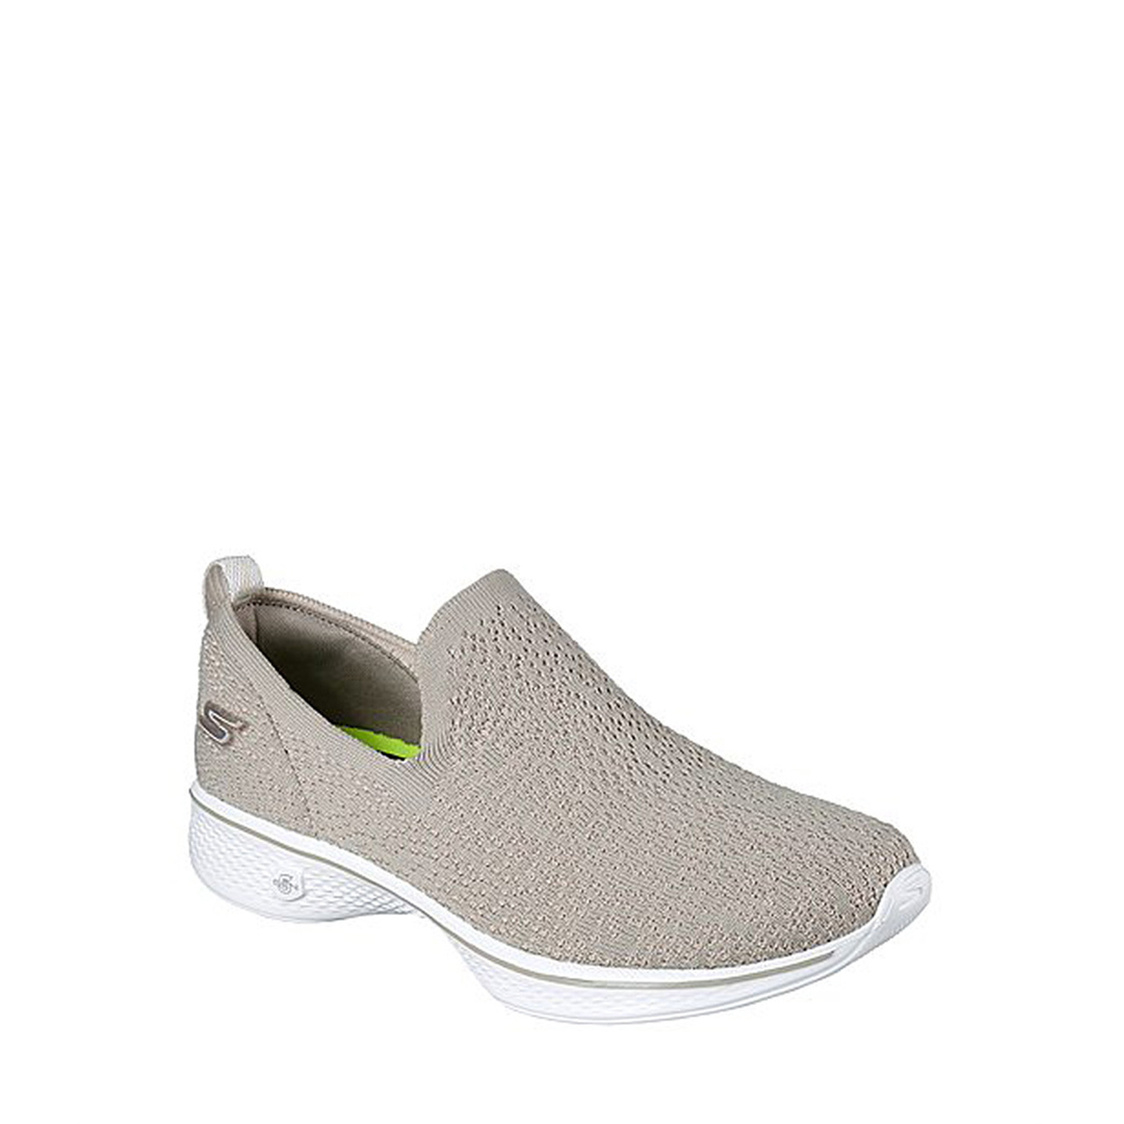 Skechers GOwalk 4 Gifted Taupe